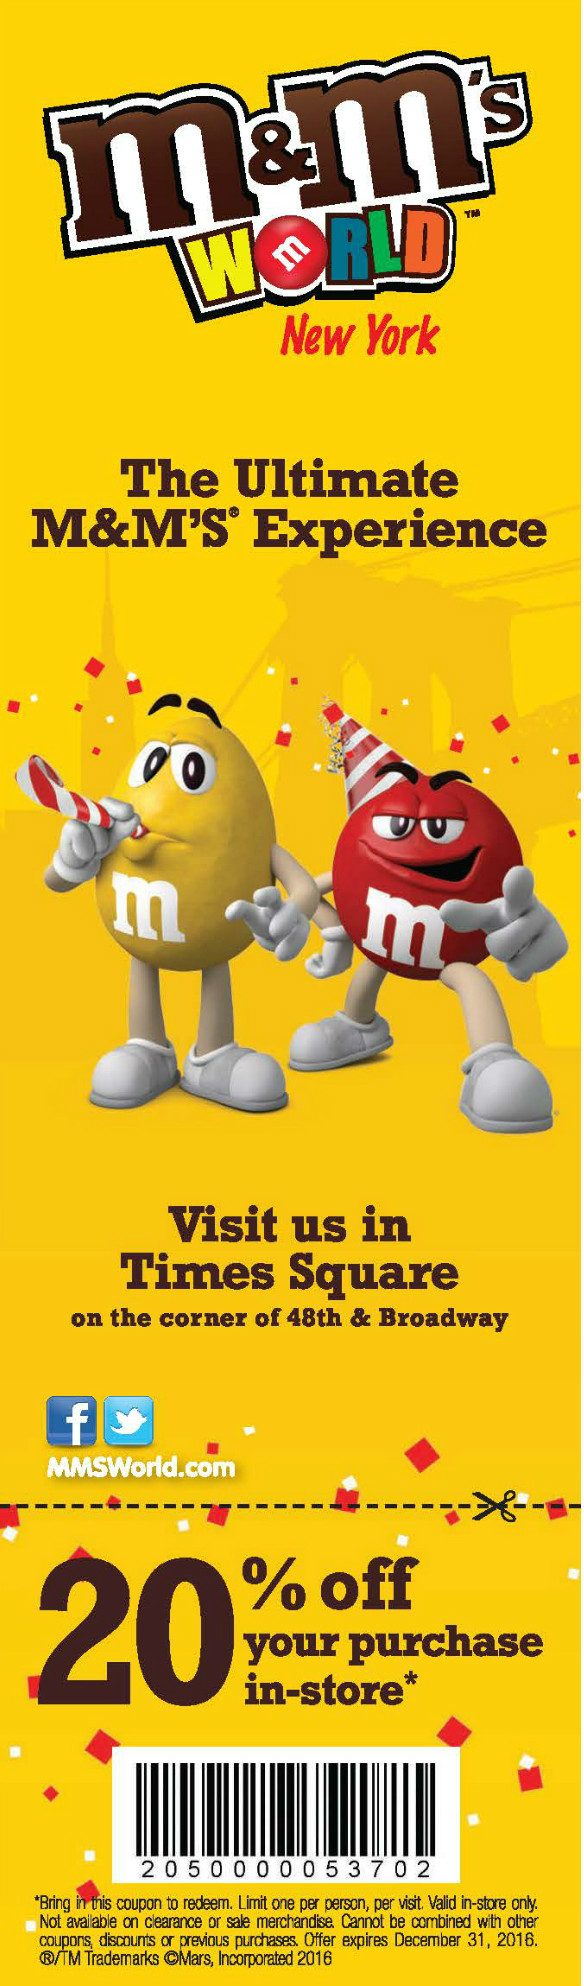 M&M'S World New York - 20% off your purchase in-store Expires: 12/31/2016